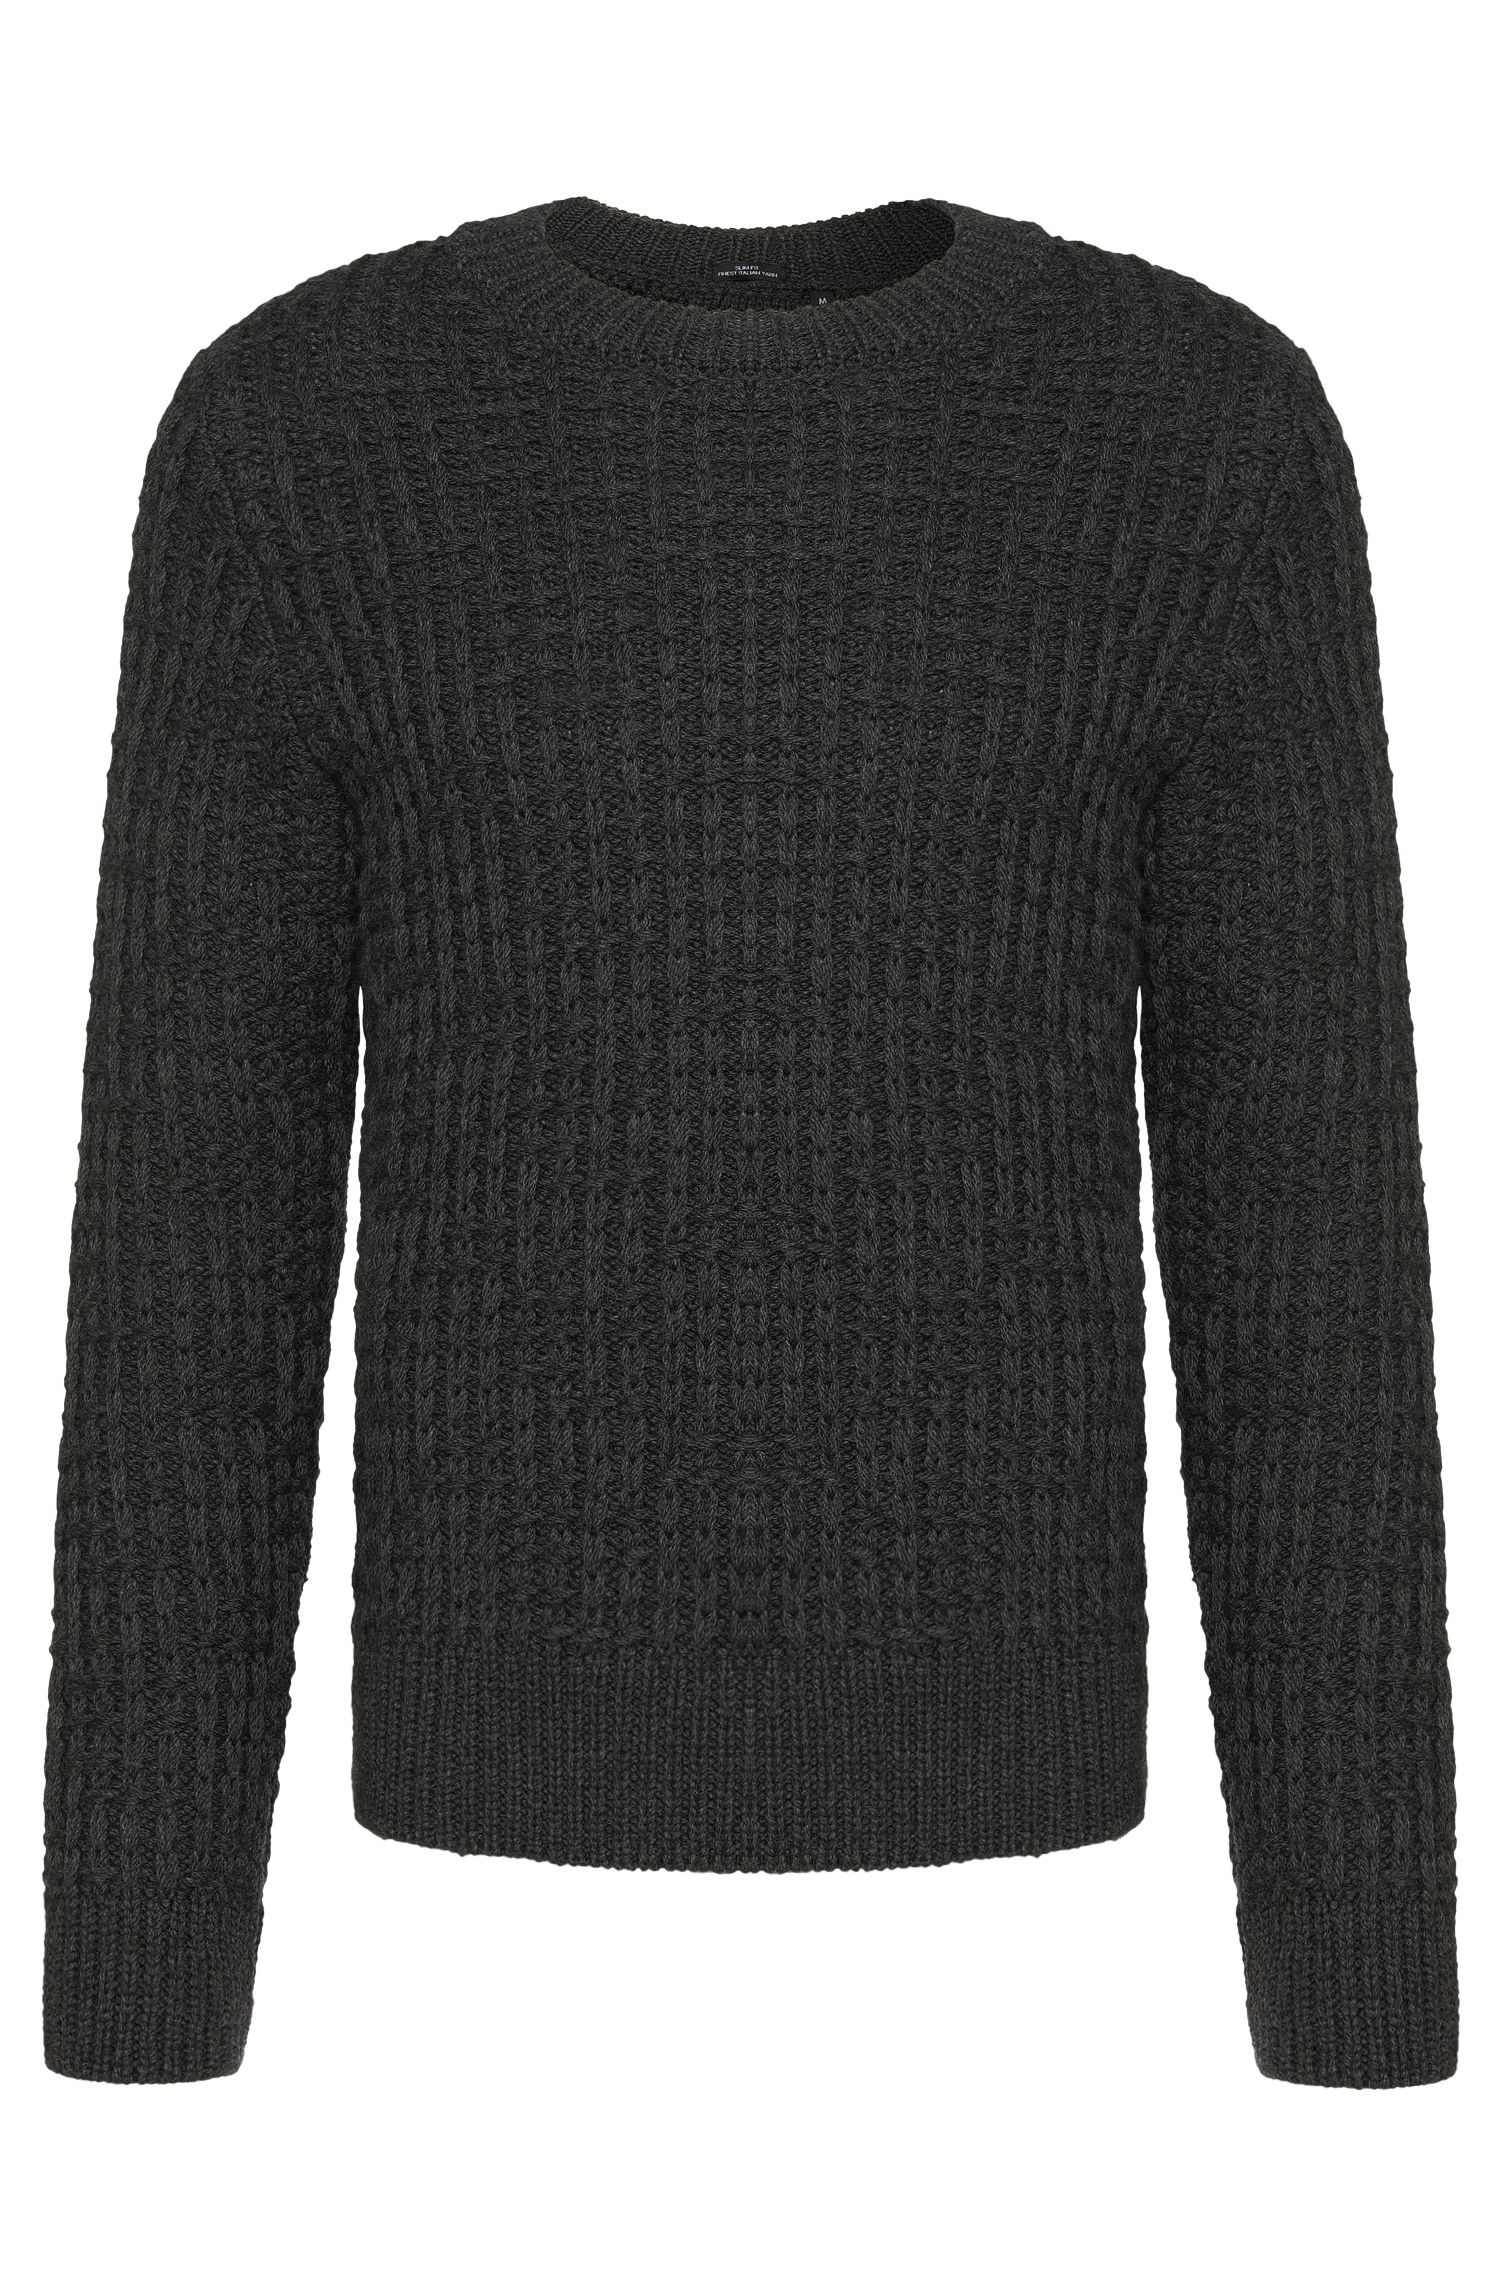 Slim-Fit Tailored Pullover aus Schurwoll-Mix mit Strick-Muster: 'T-Buccino'